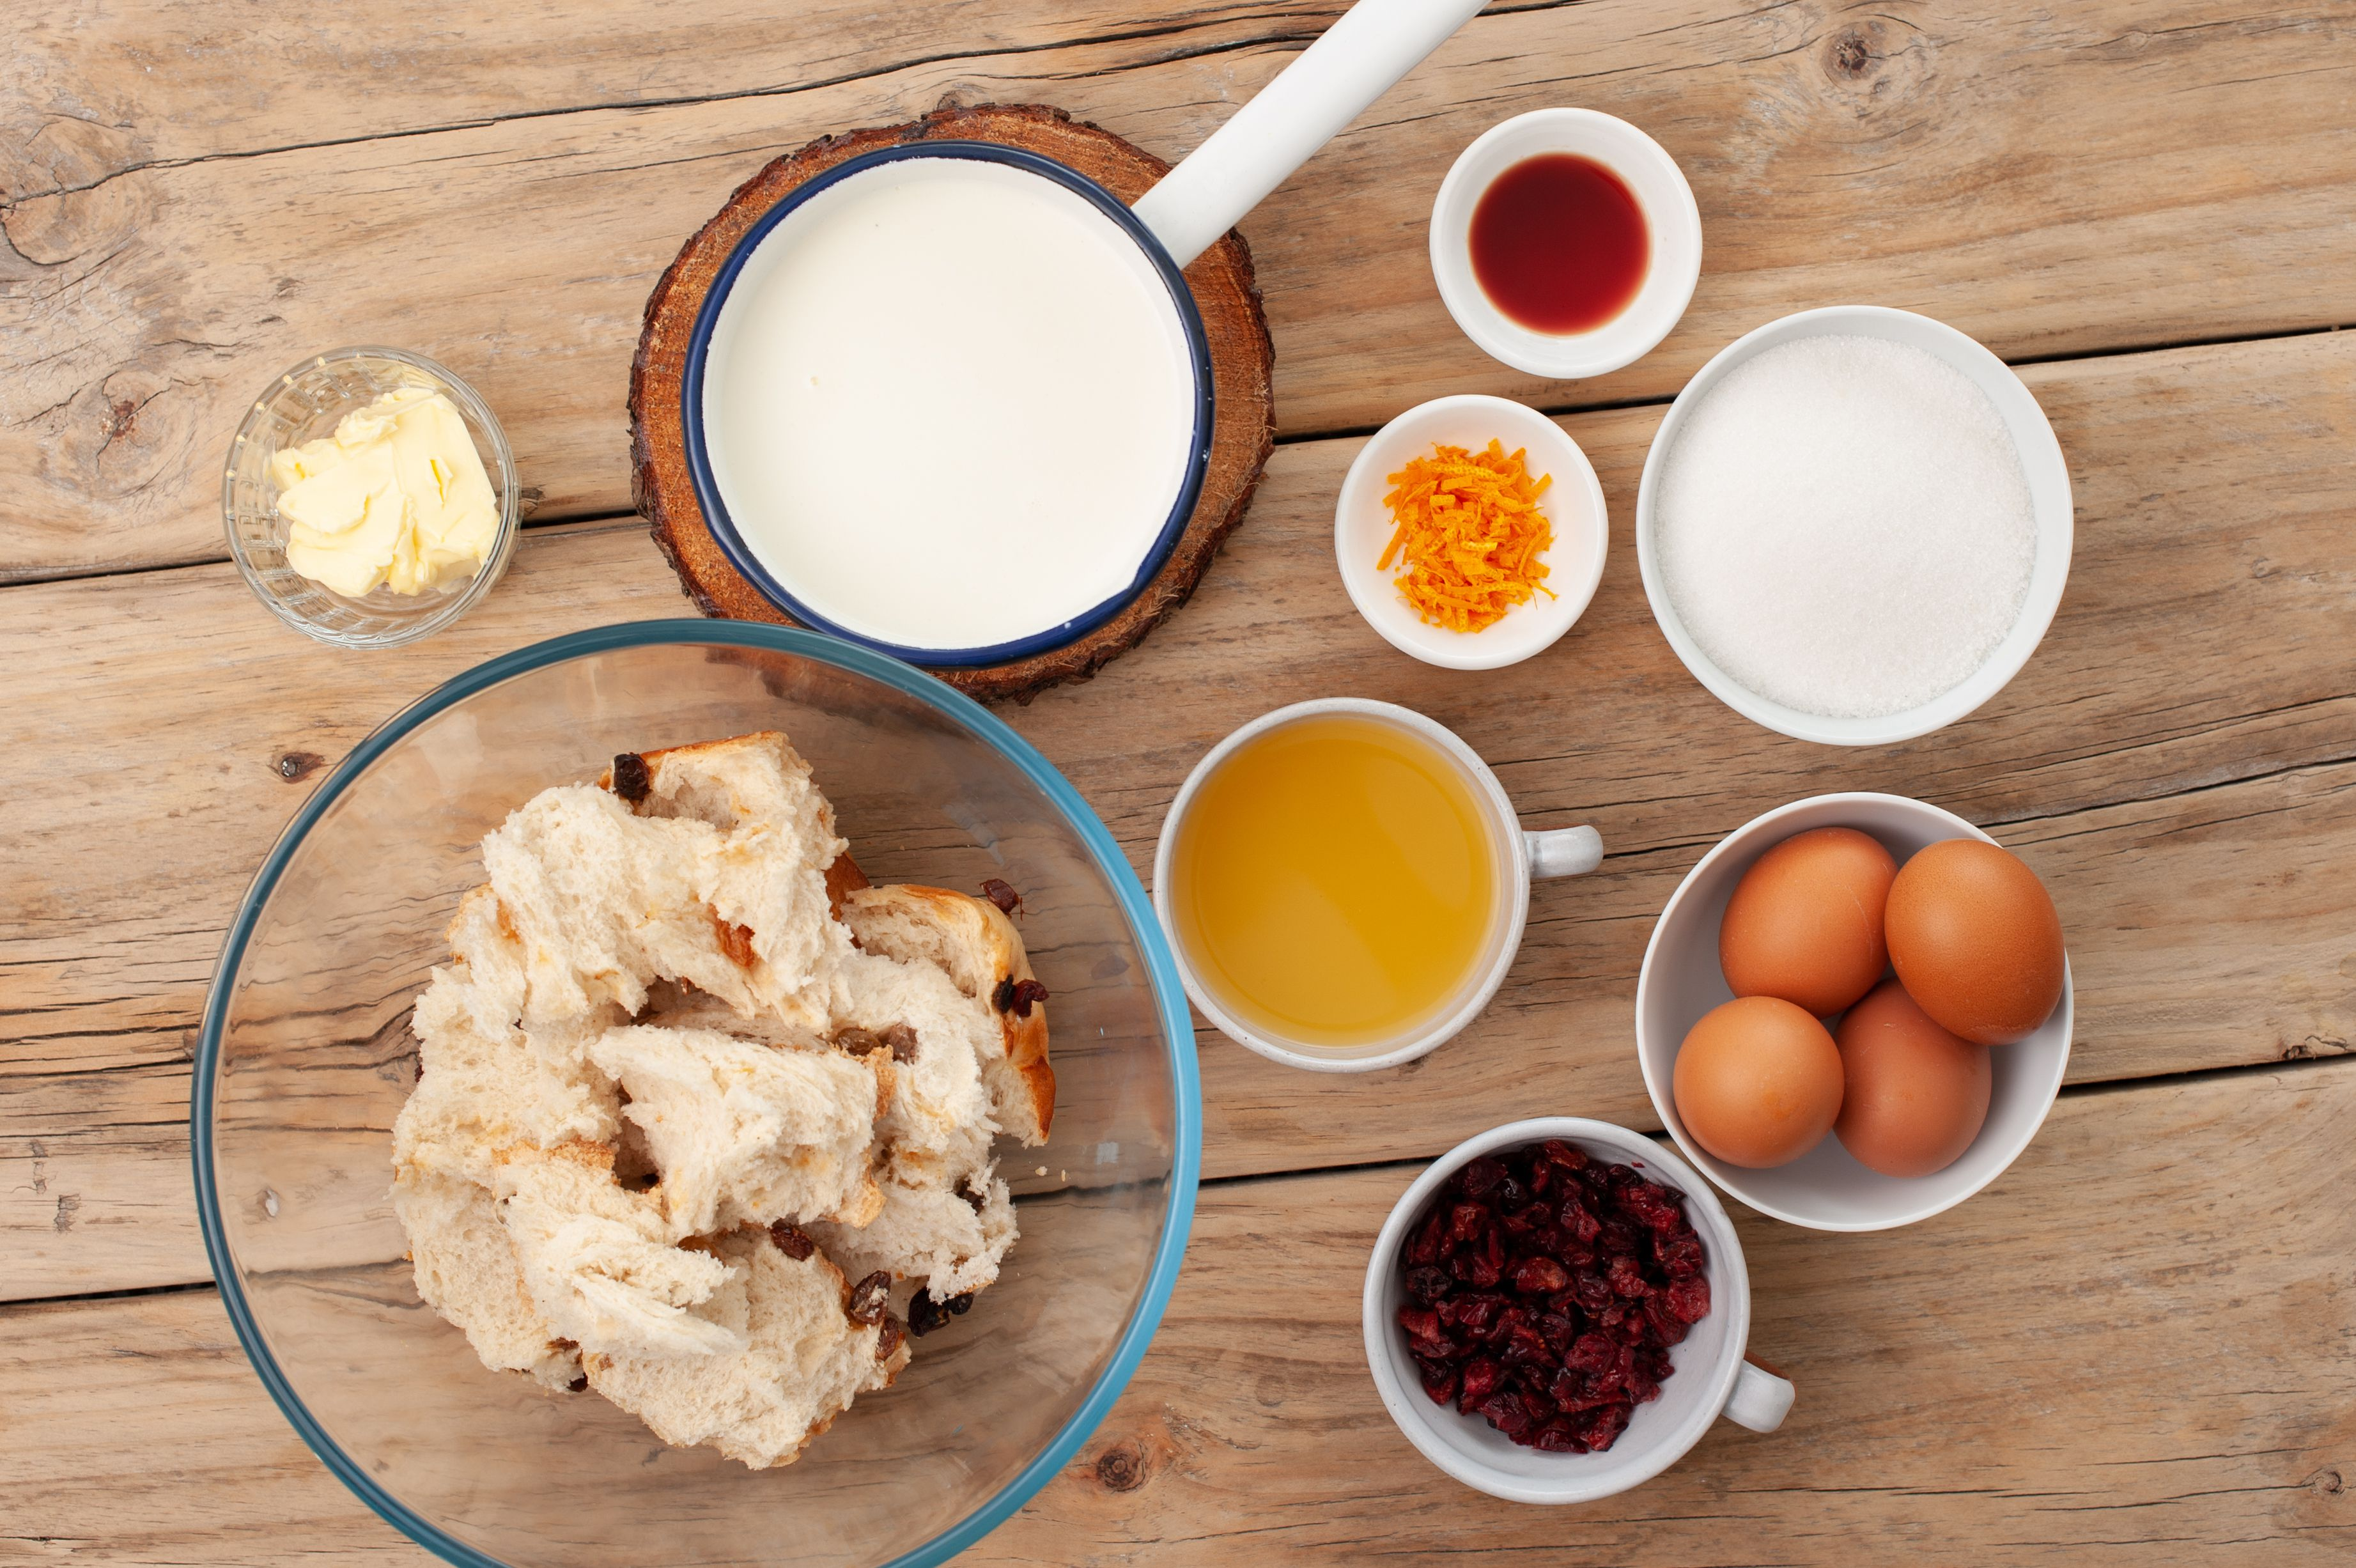 Ingredients for cranberry orange bread pudding